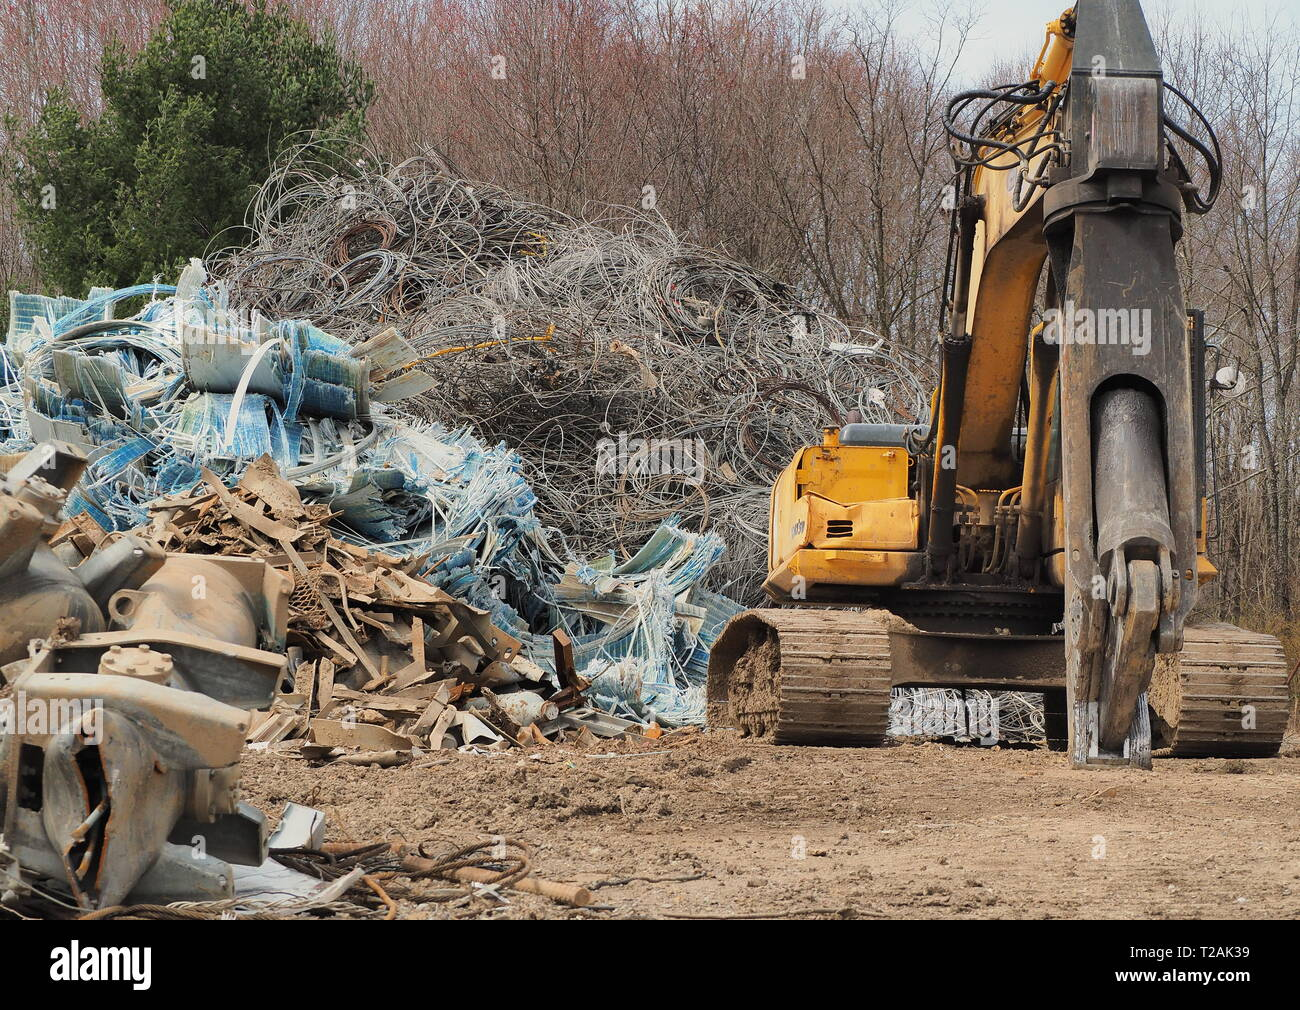 Scrap Yard metal shear mounted on excavator with pile of fiberglass recyclable scrap - Stock Image